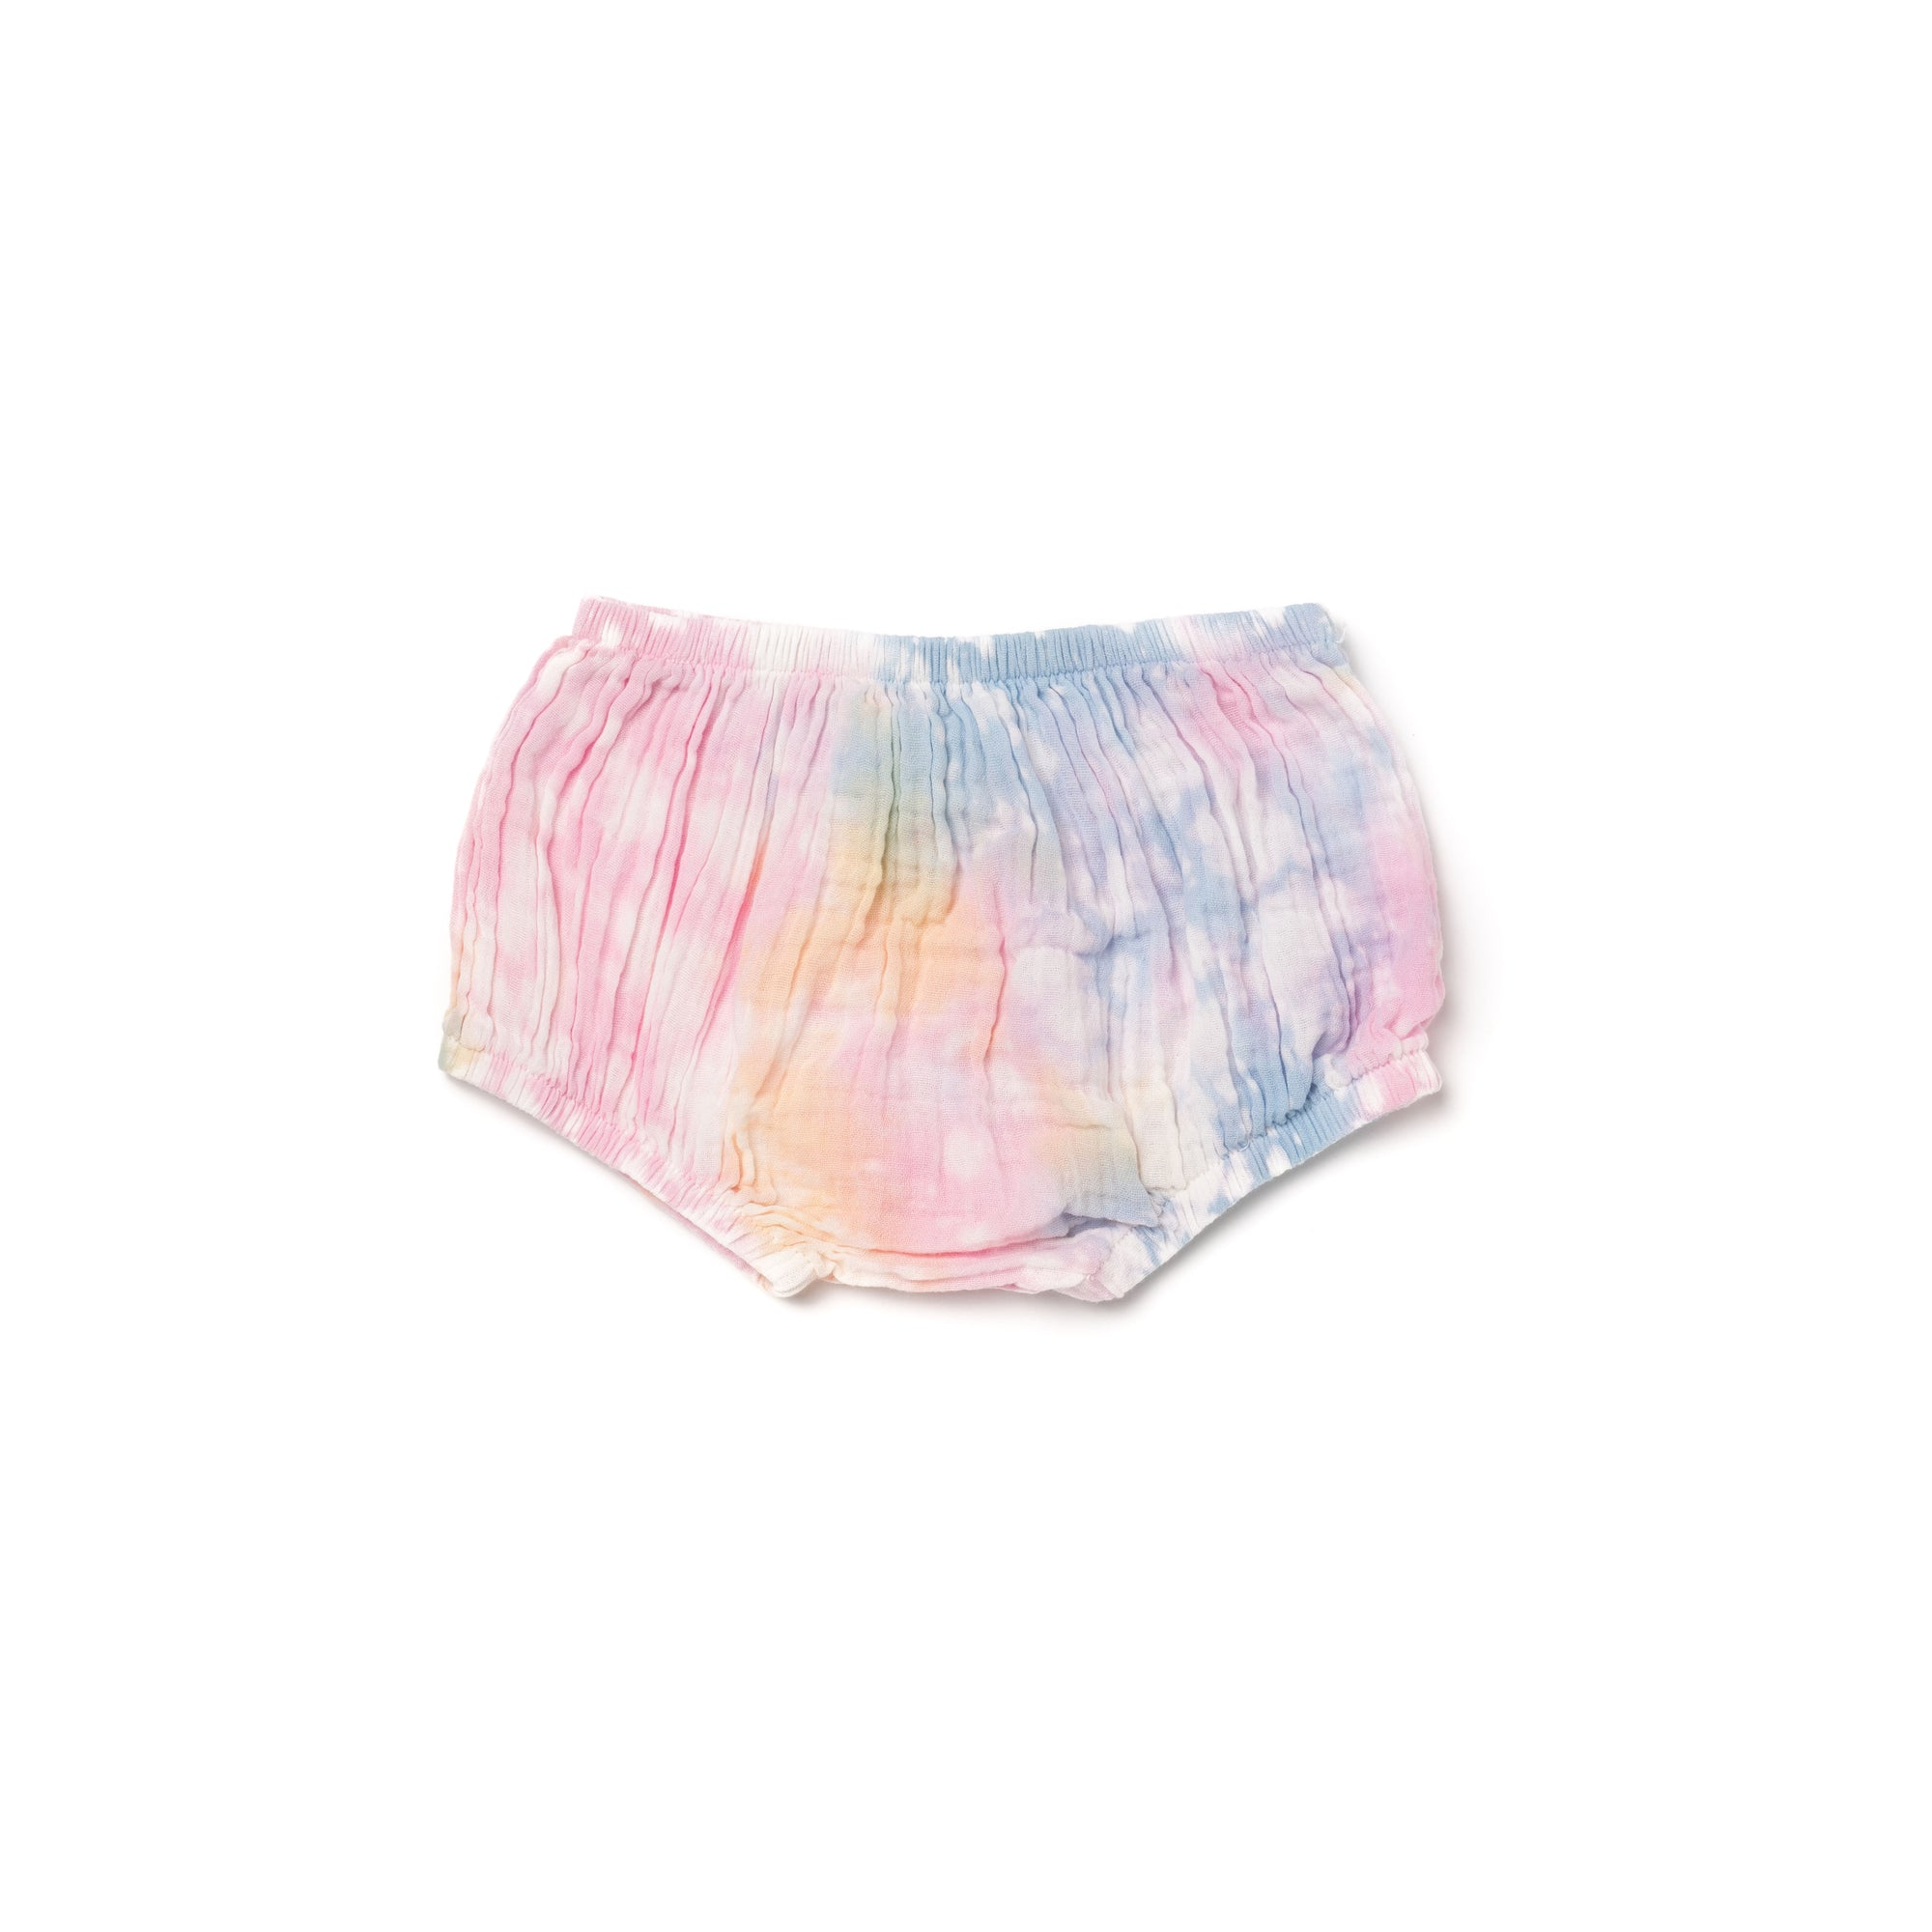 Shaved Ice Tie Dye Bloomers